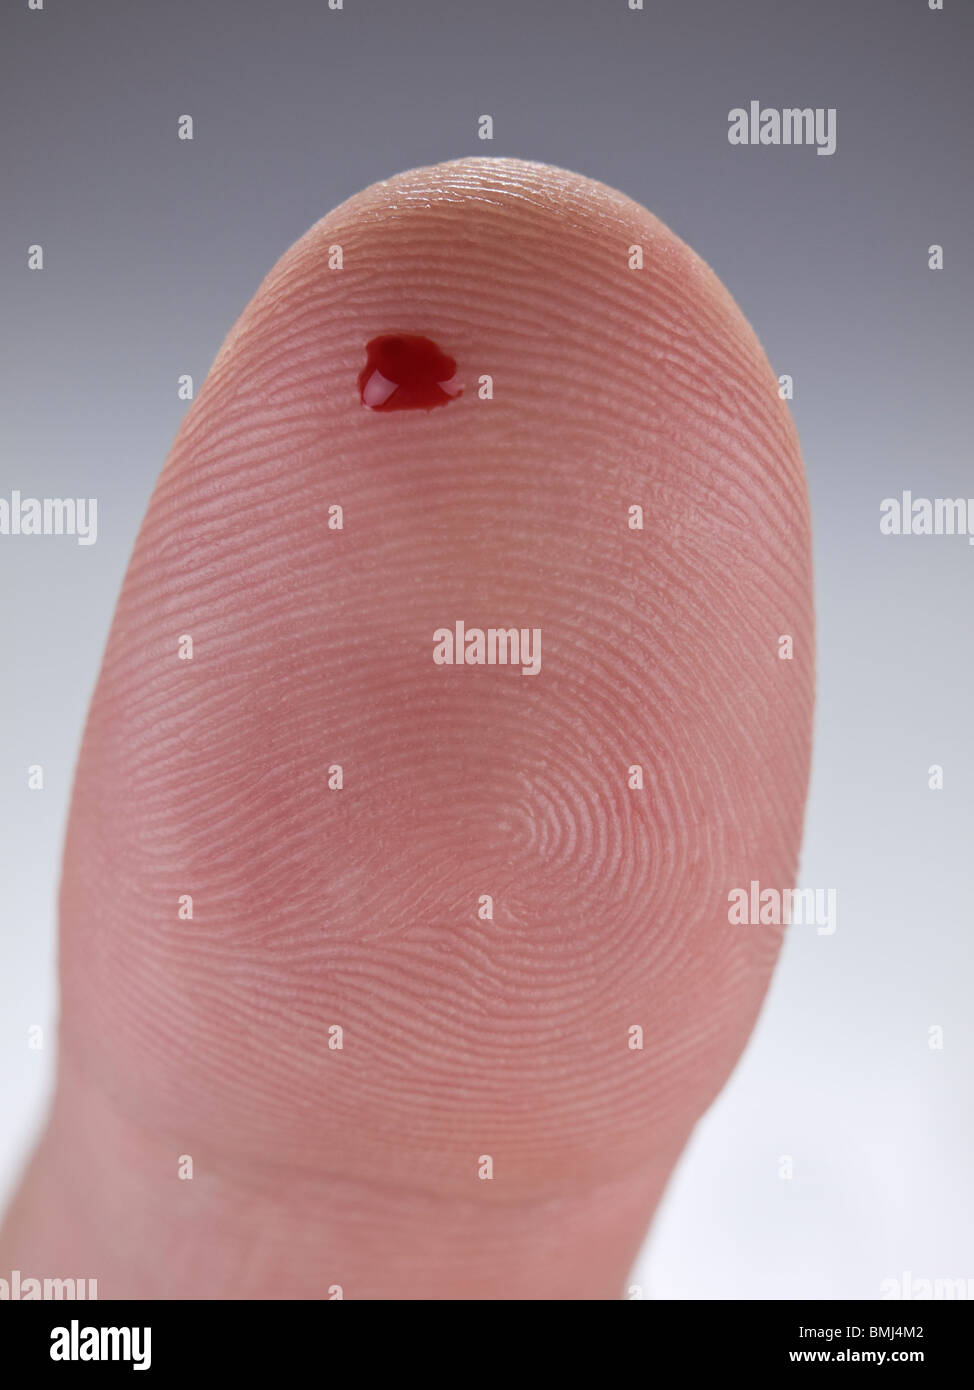 Macro view of a drop of real blood on a human thumb. - Stock Image